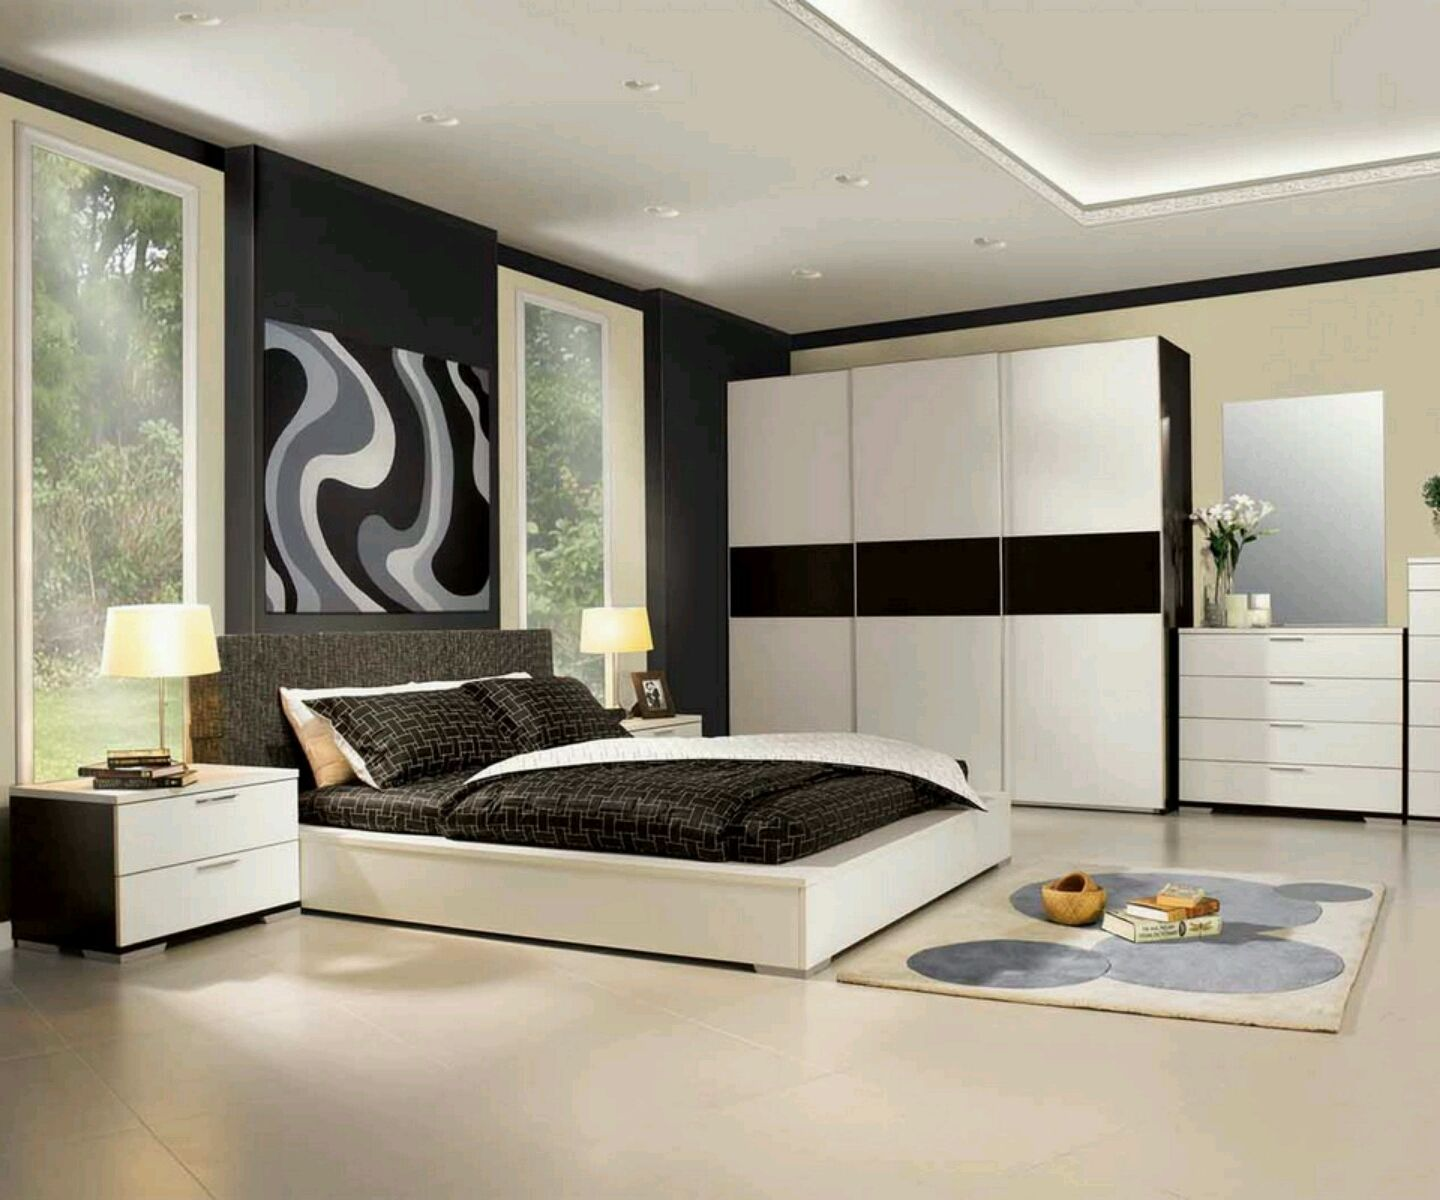 Contemporary Bedroom Furniture Designs Pleasing Modern Bedroom Furniture Design For More Pictures And Design Ideas Design Inspiration